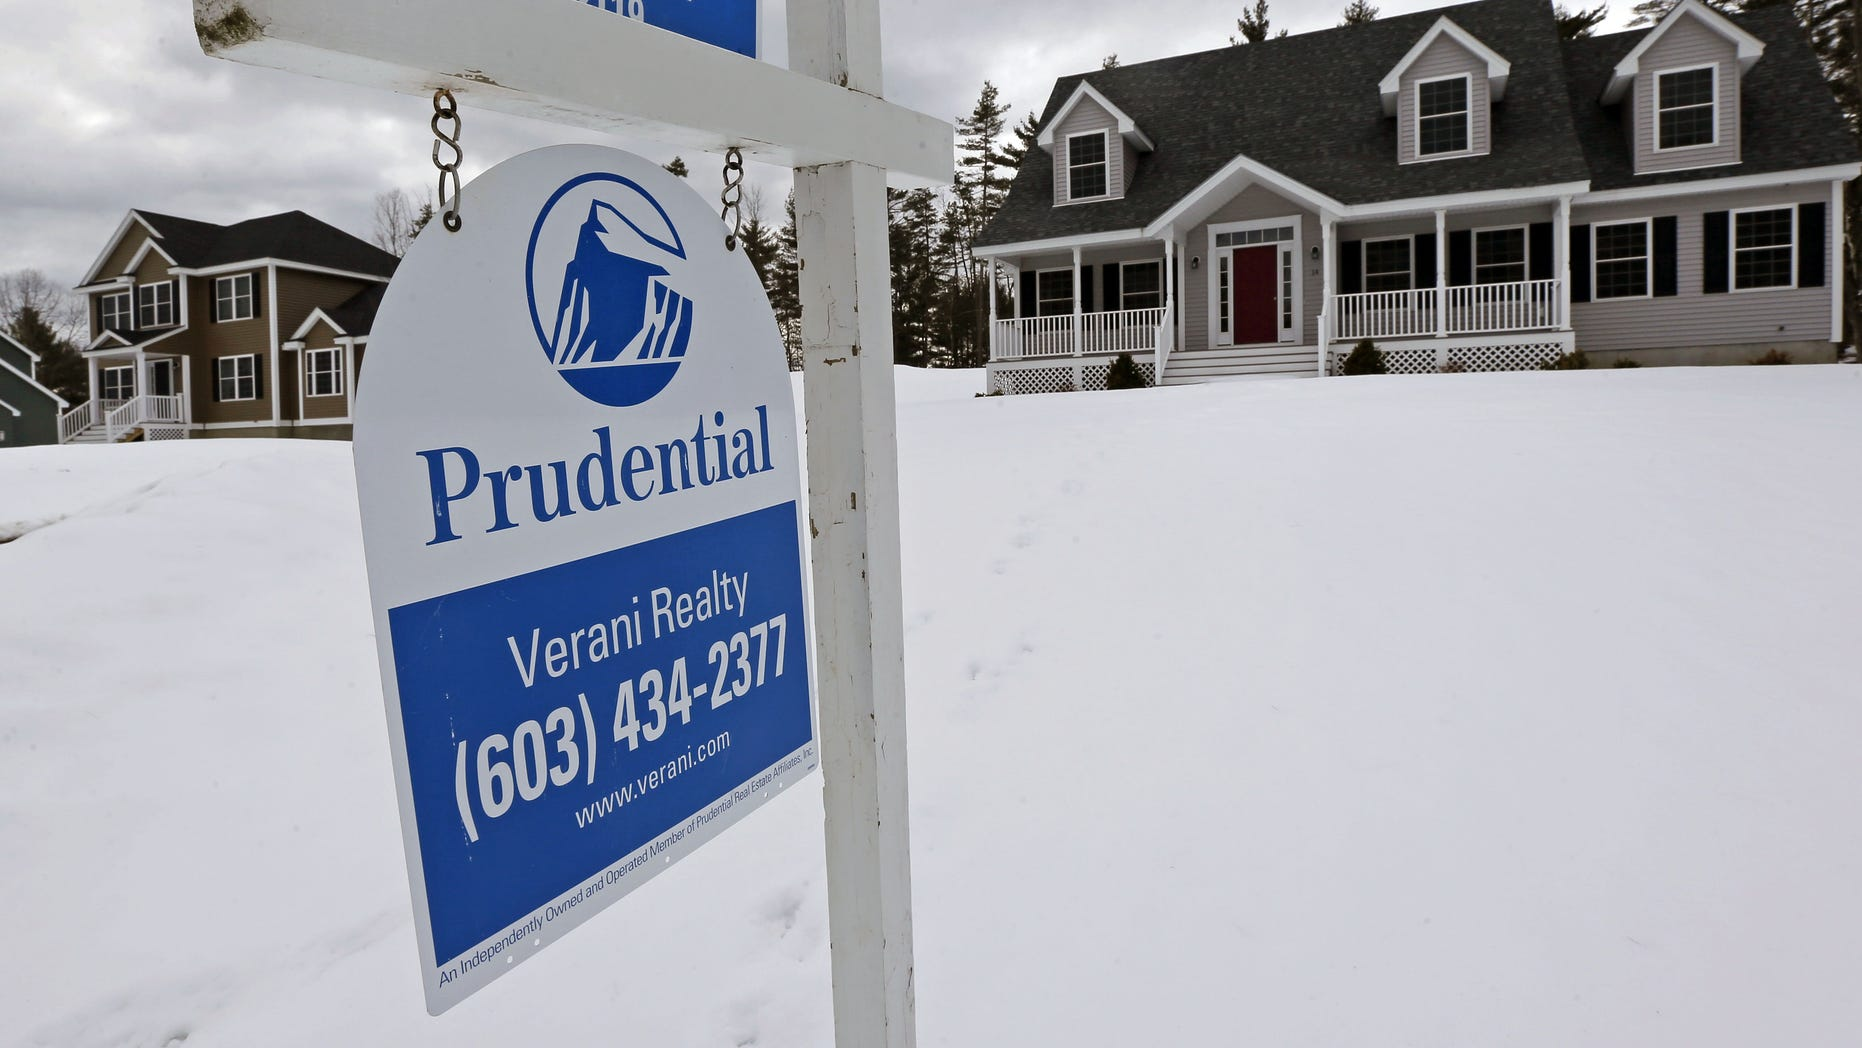 FILE - In this March 5, 2013 file photo, a home is for sale in Auburn, N.H.  Standard & Poor's/Case-Shiller reports on home prices in December on Tuesday, Feb. 25, 2014. (AP Photo/Charles Krupa, File)